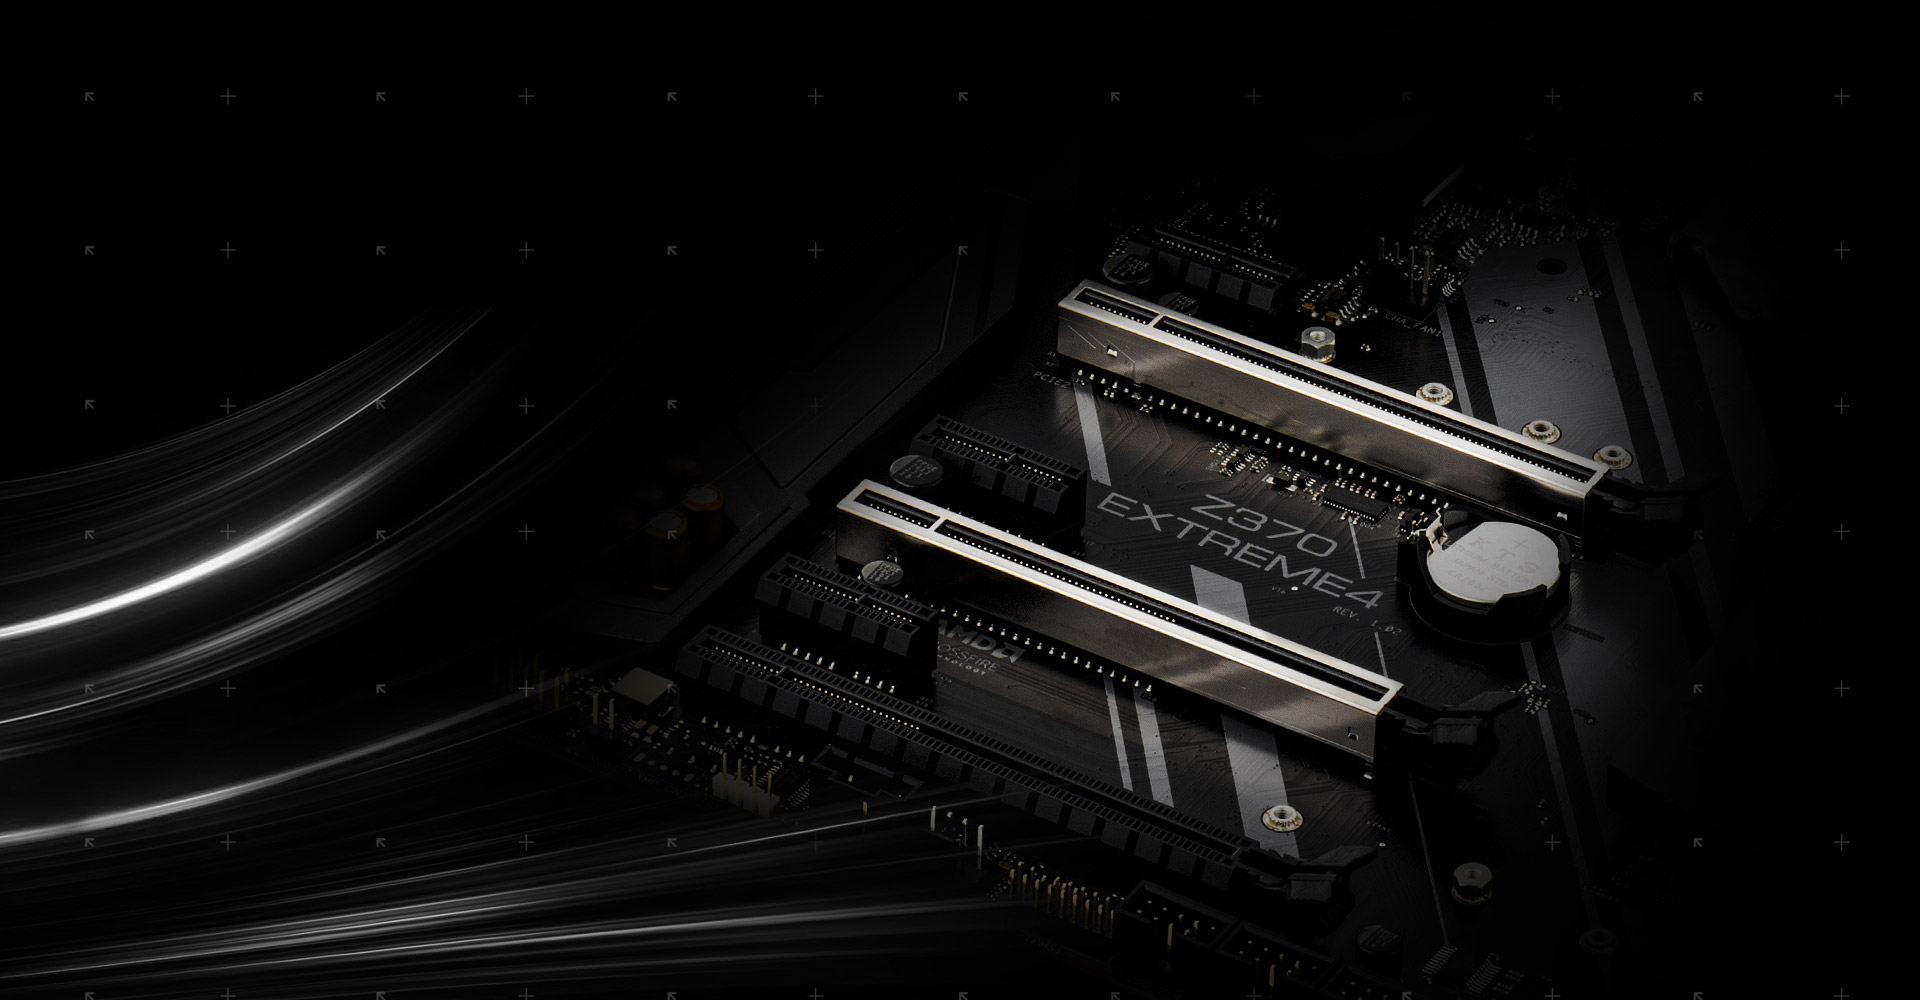 Asrock Z370 Extreme4 Wiring Diagram Walk In Cooler The Advanced Pci E Steel Slots Packed With Solid Cover That Prevent Any Signal Interference Graphics Cards It Also Ensures Heavy To